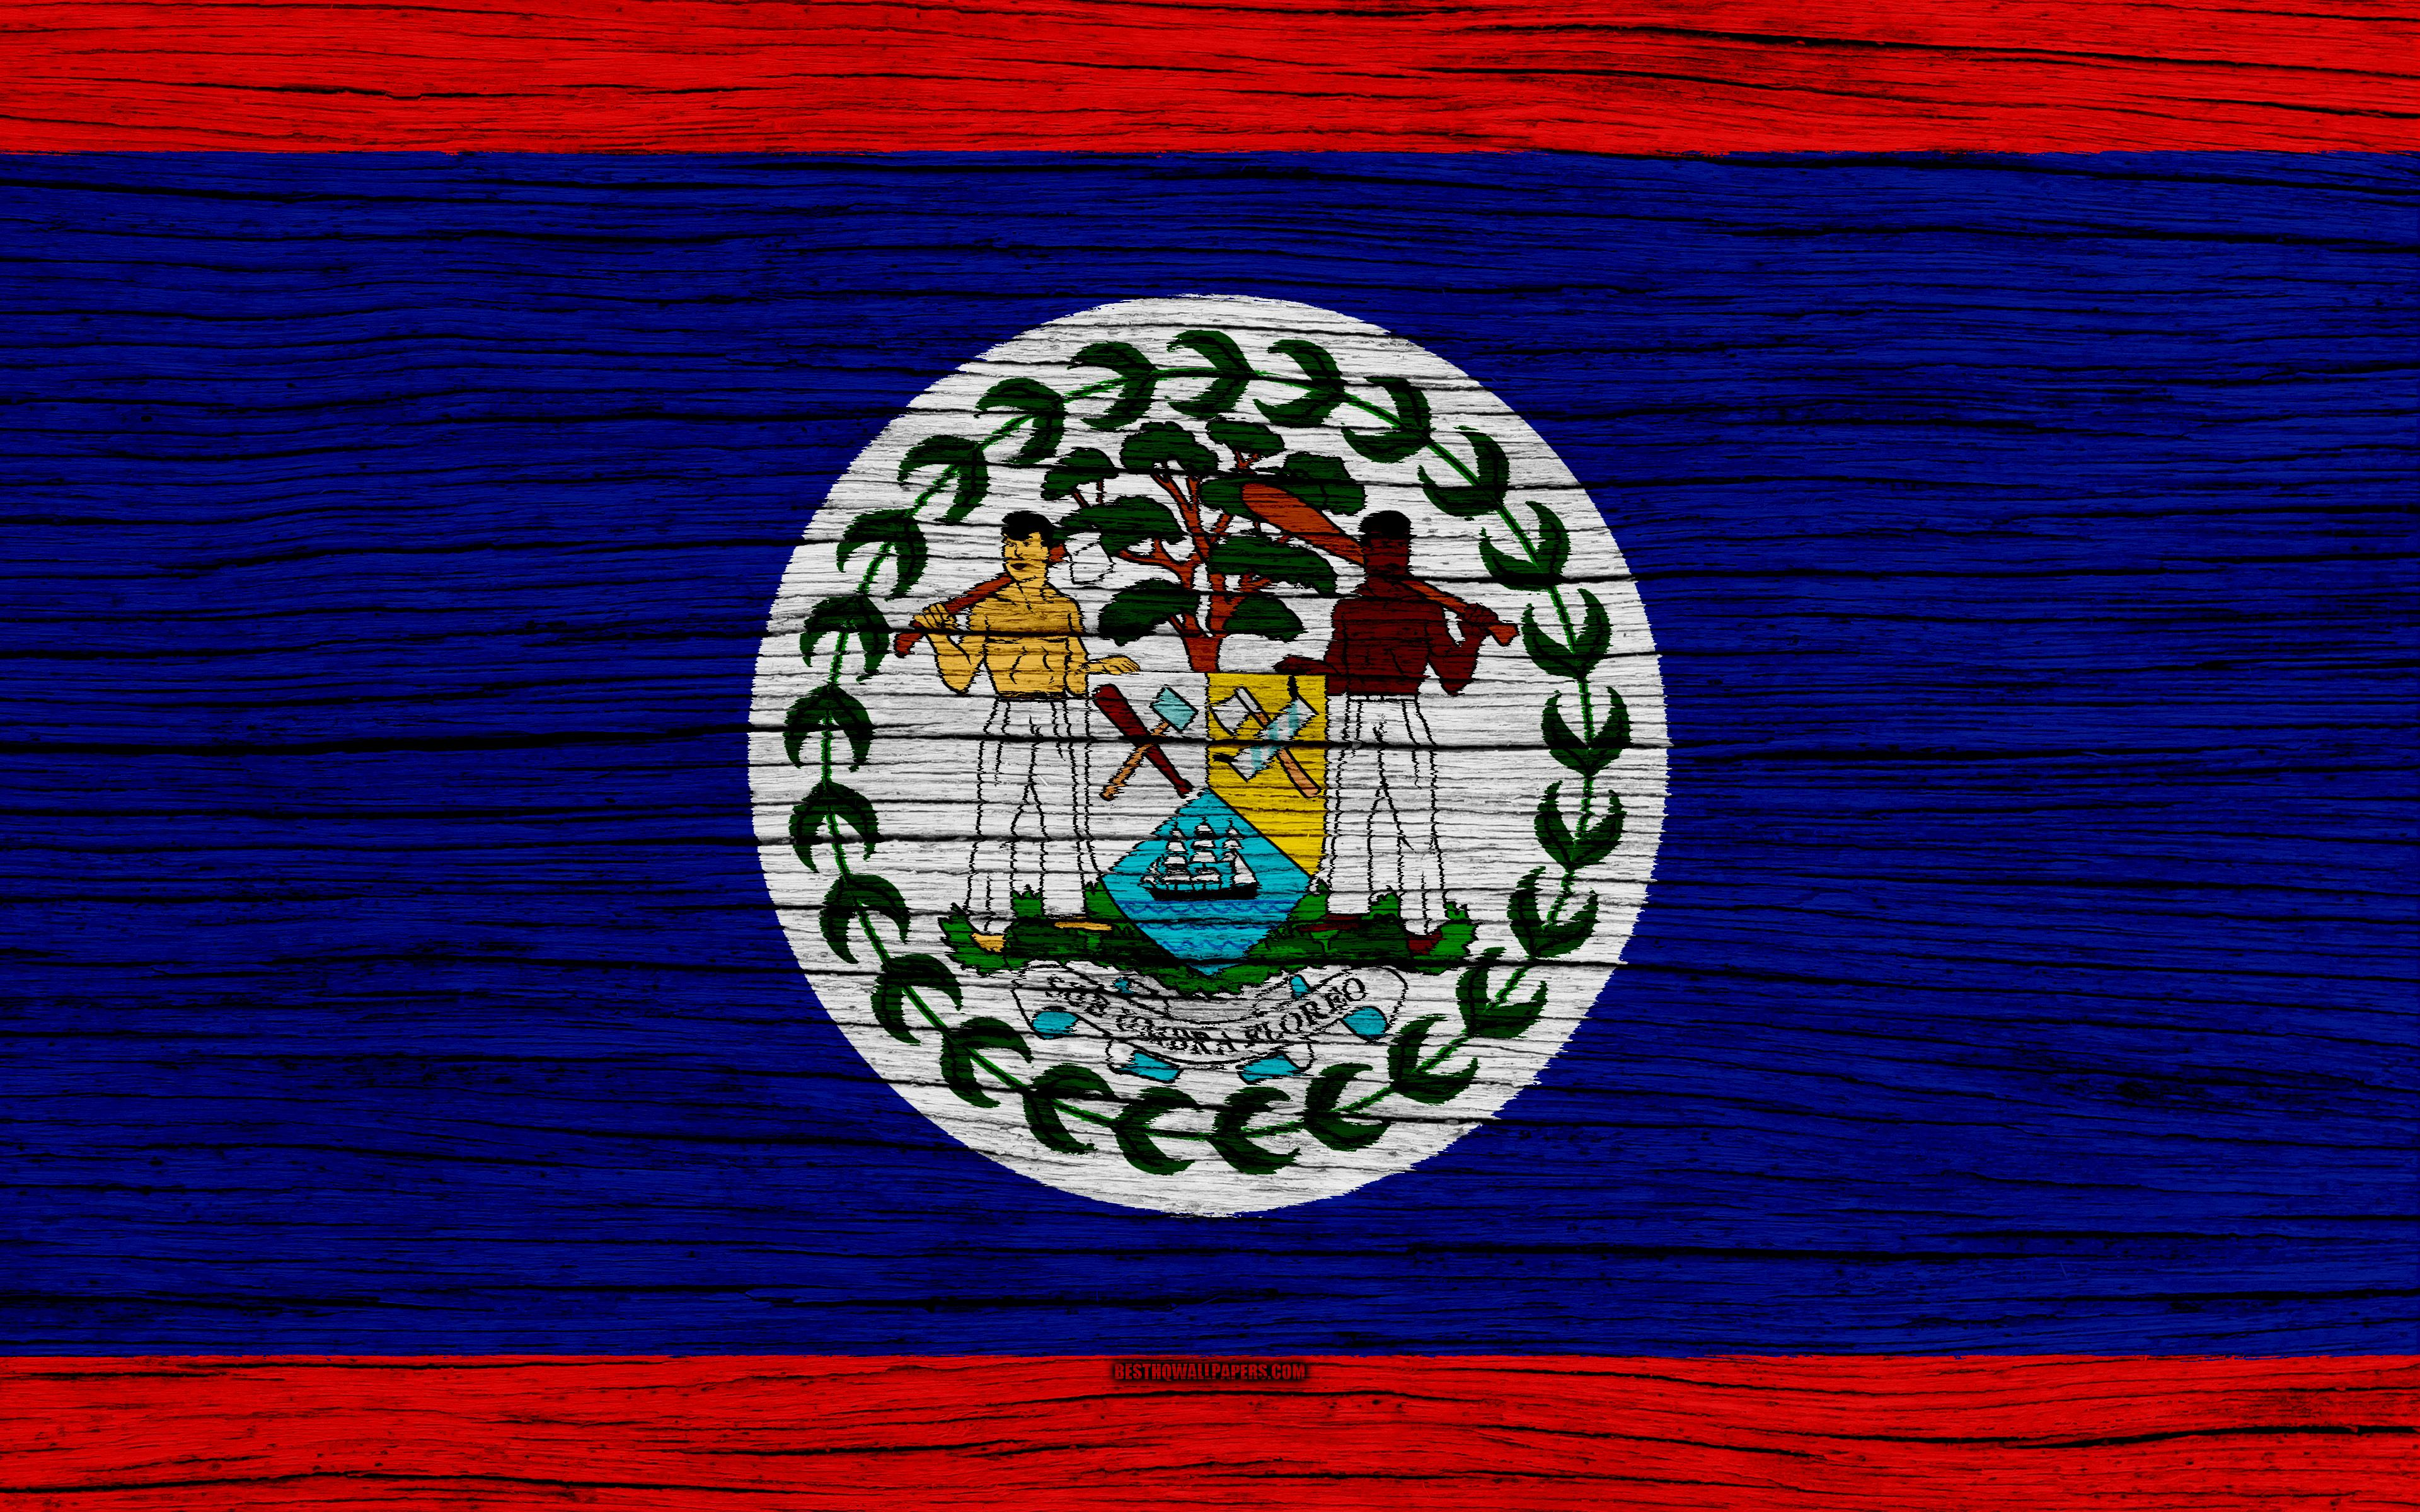 Download wallpapers Flag of Belize, 4k, North America, wooden